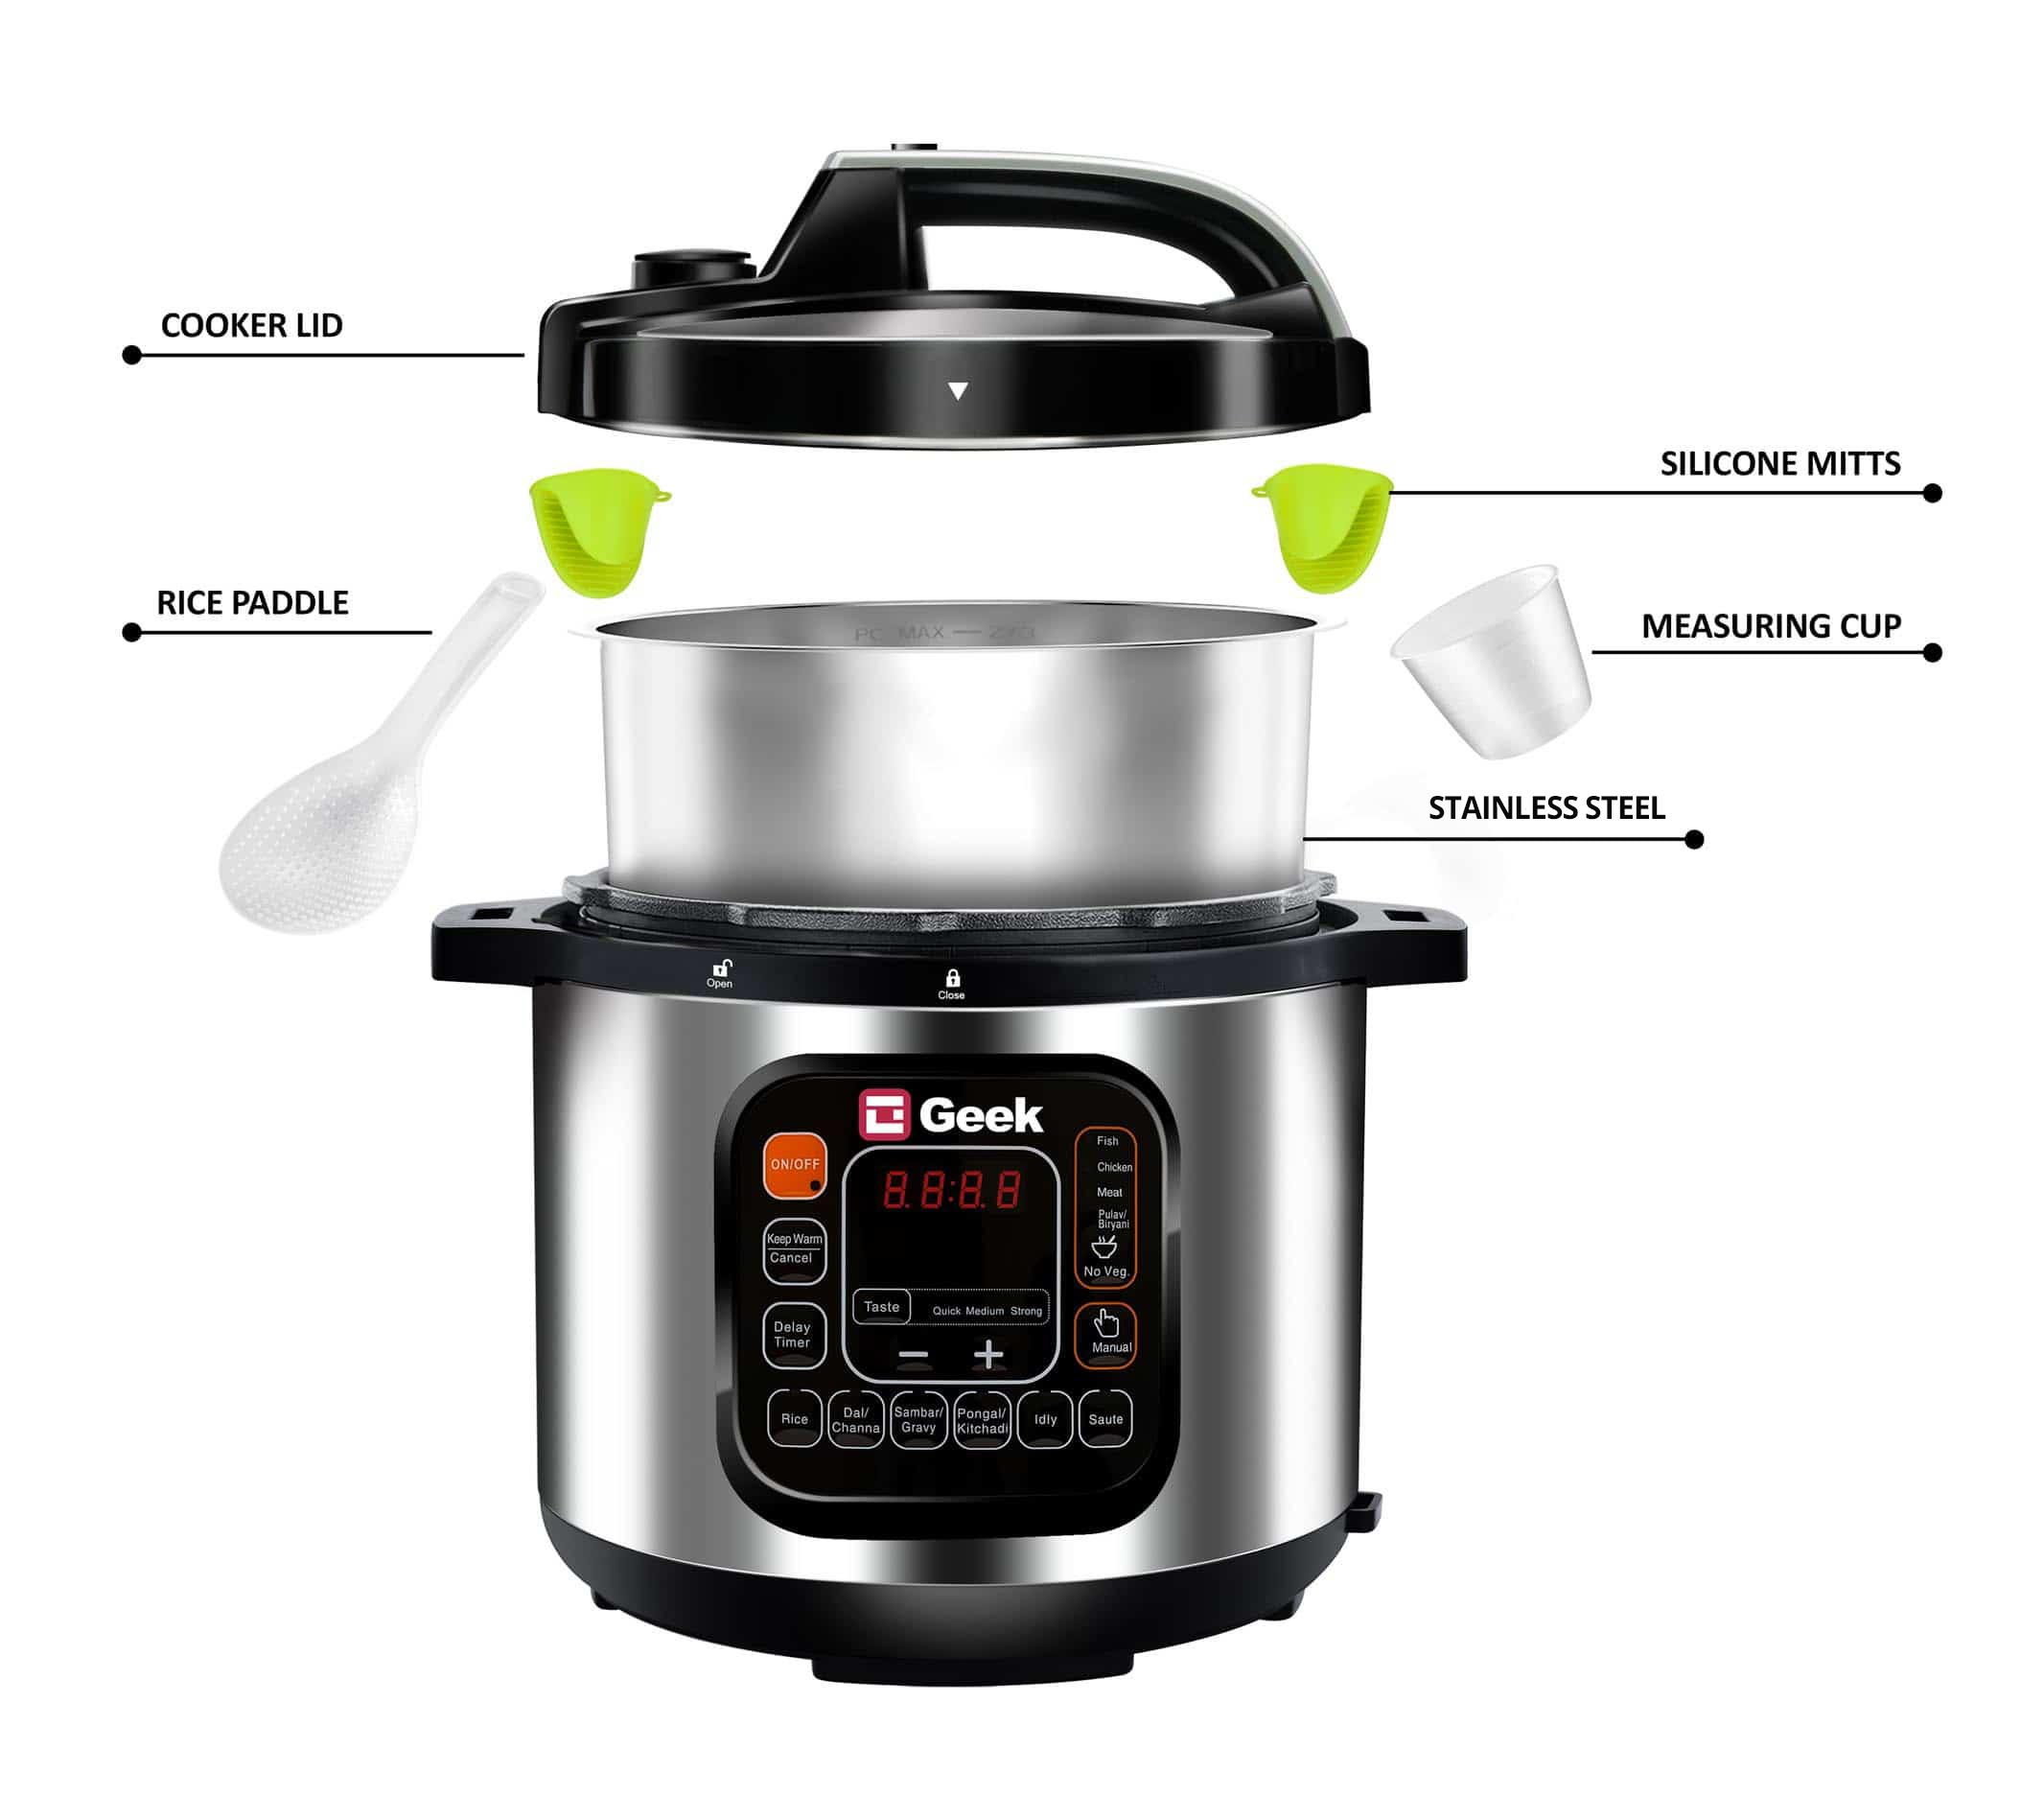 See what's inside the Geek Robocook Zeta Automatic Electric Pressure cooker box